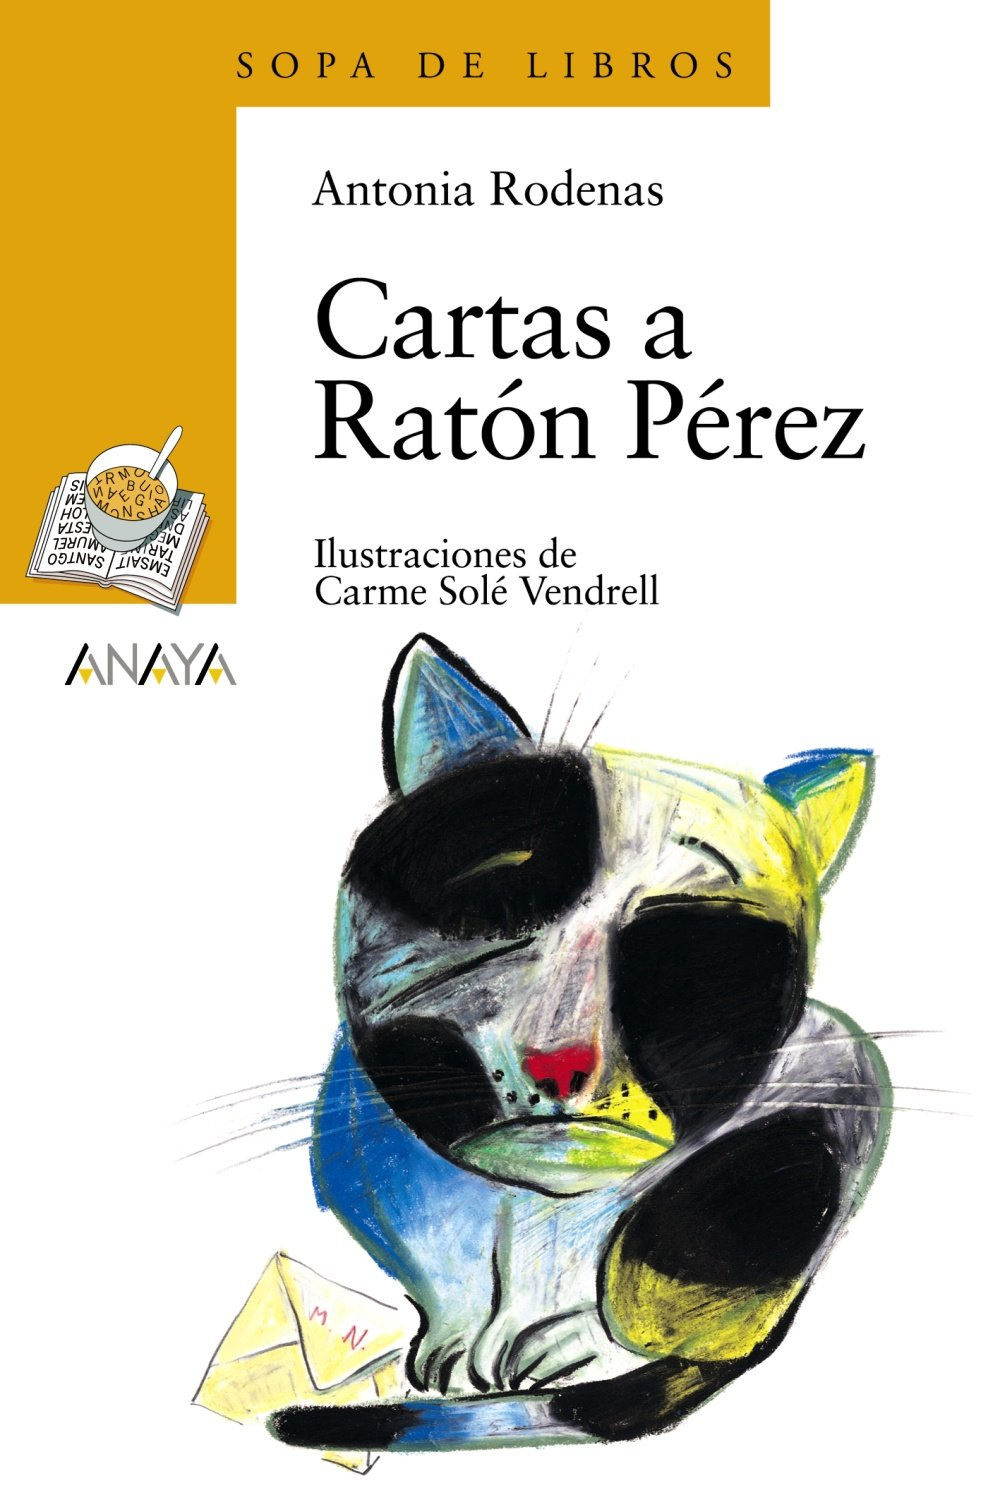 Cartas a raton Perez/Letters to Mouse Perez (Sopa de Libros/Soup of Books) (Spanish Edition) (Spanish) Paperback – October 30, 2006